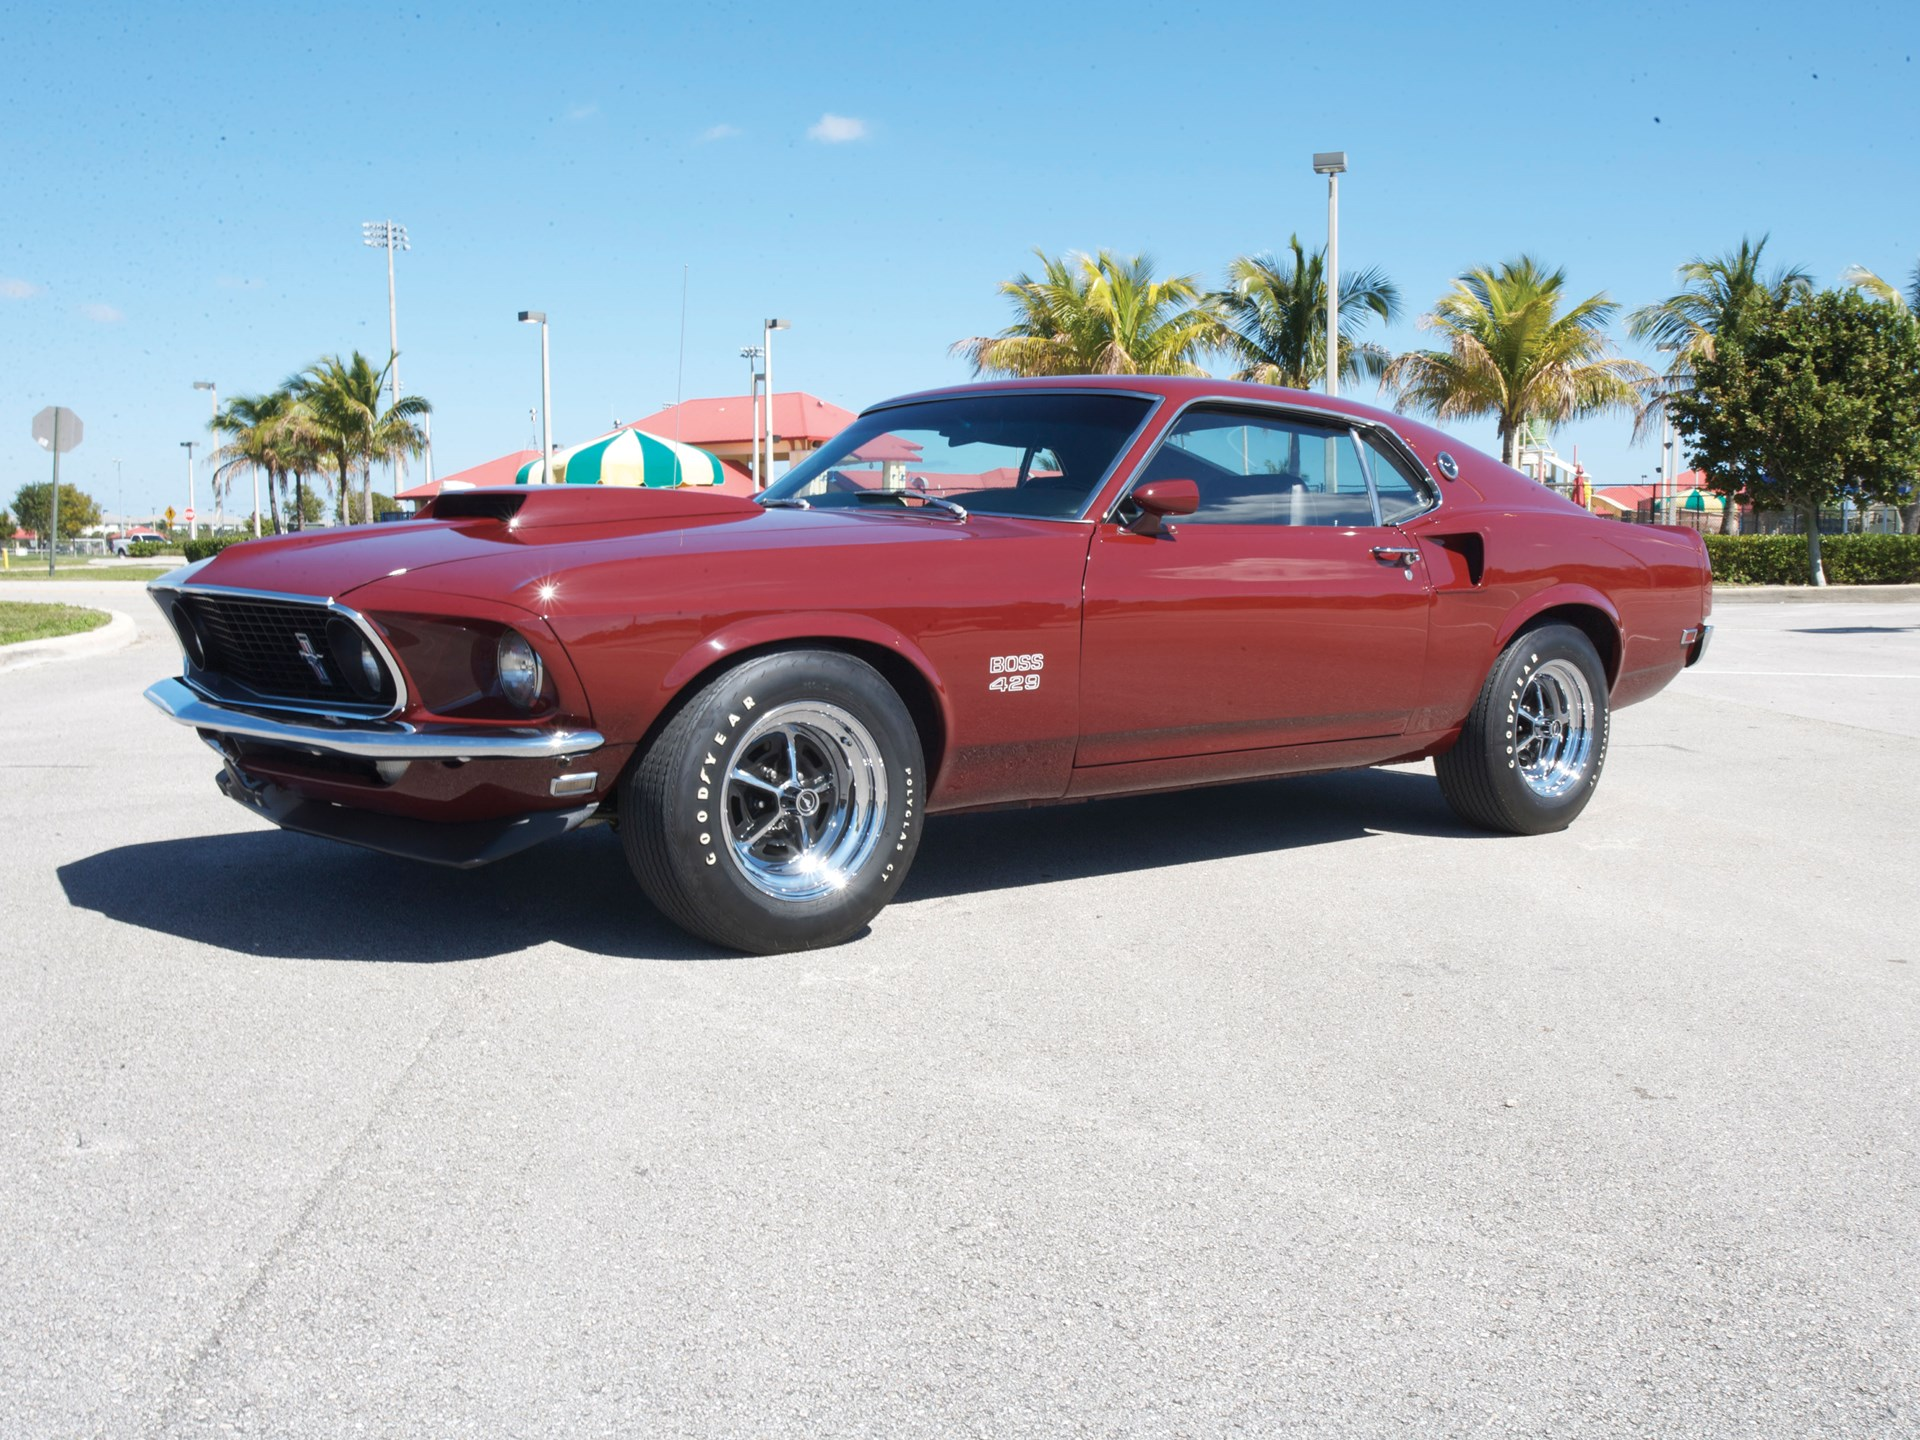 1969 Mustang Boss 429 Parts Diagrams Electrical Wiring Engine Diagram Rm Sothebys Ford Fort Lauderdale 2014 Bullitt